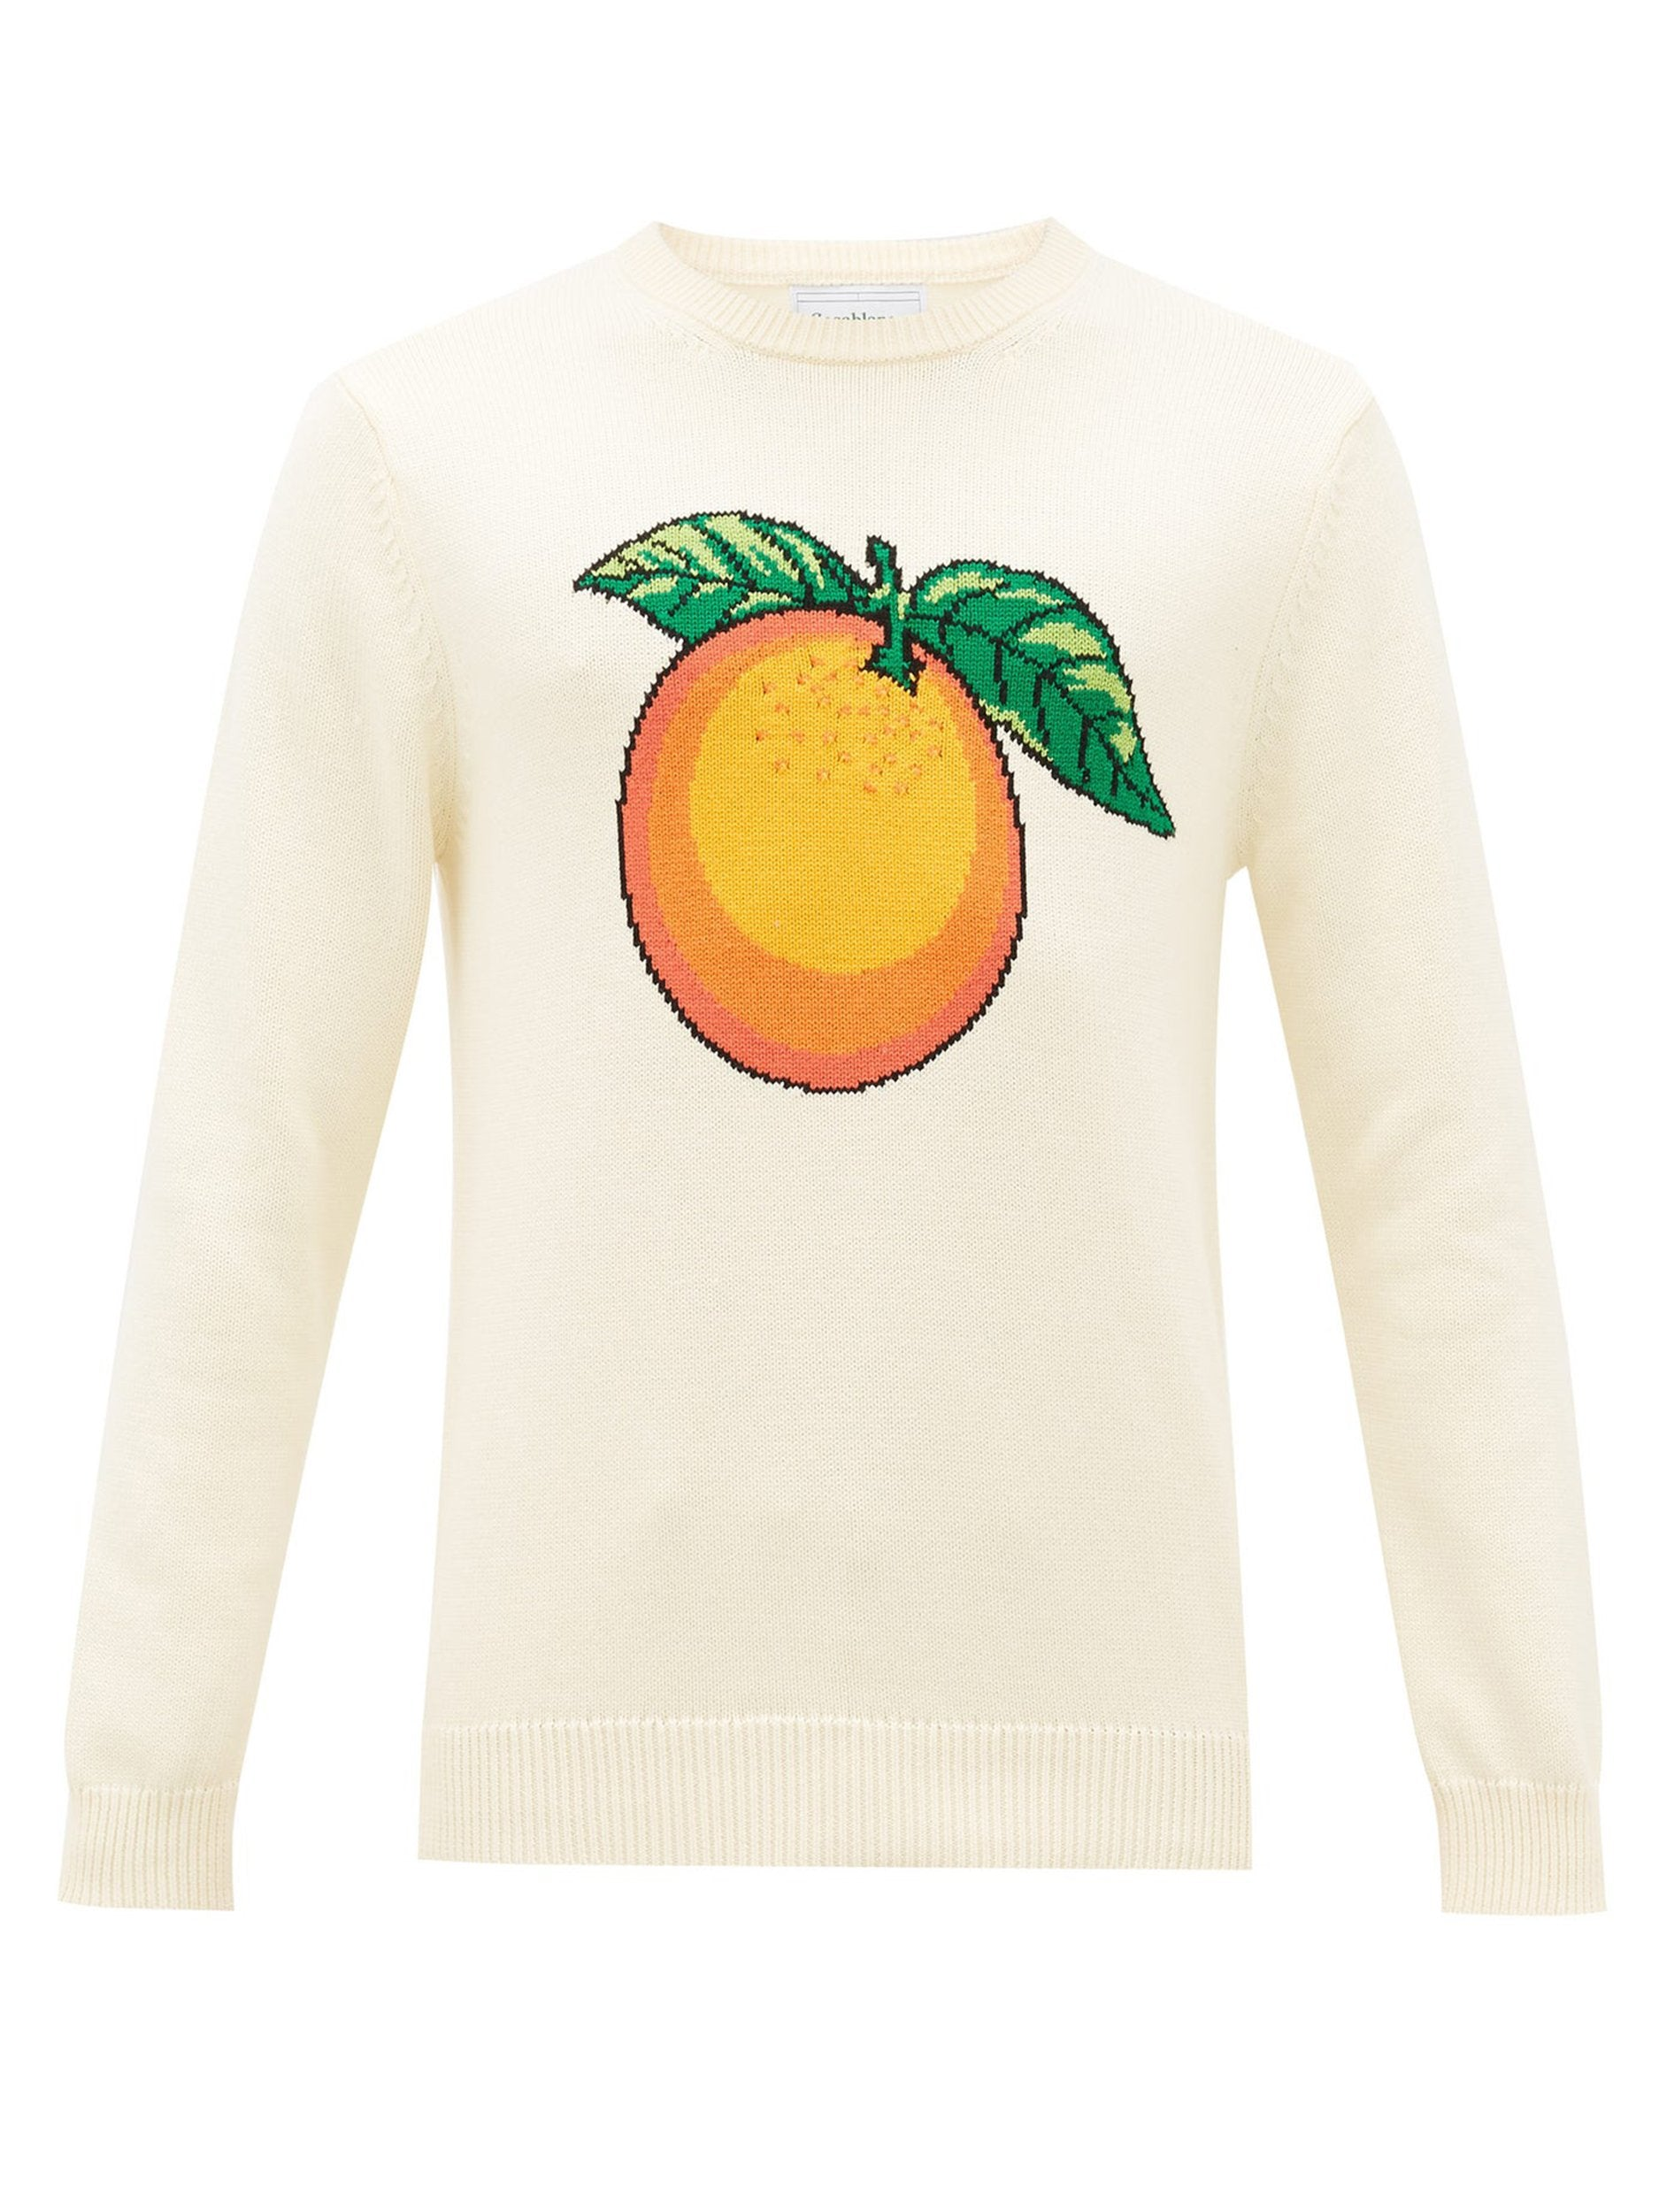 Orange-Intarsia Cotton Sweater (Cream)